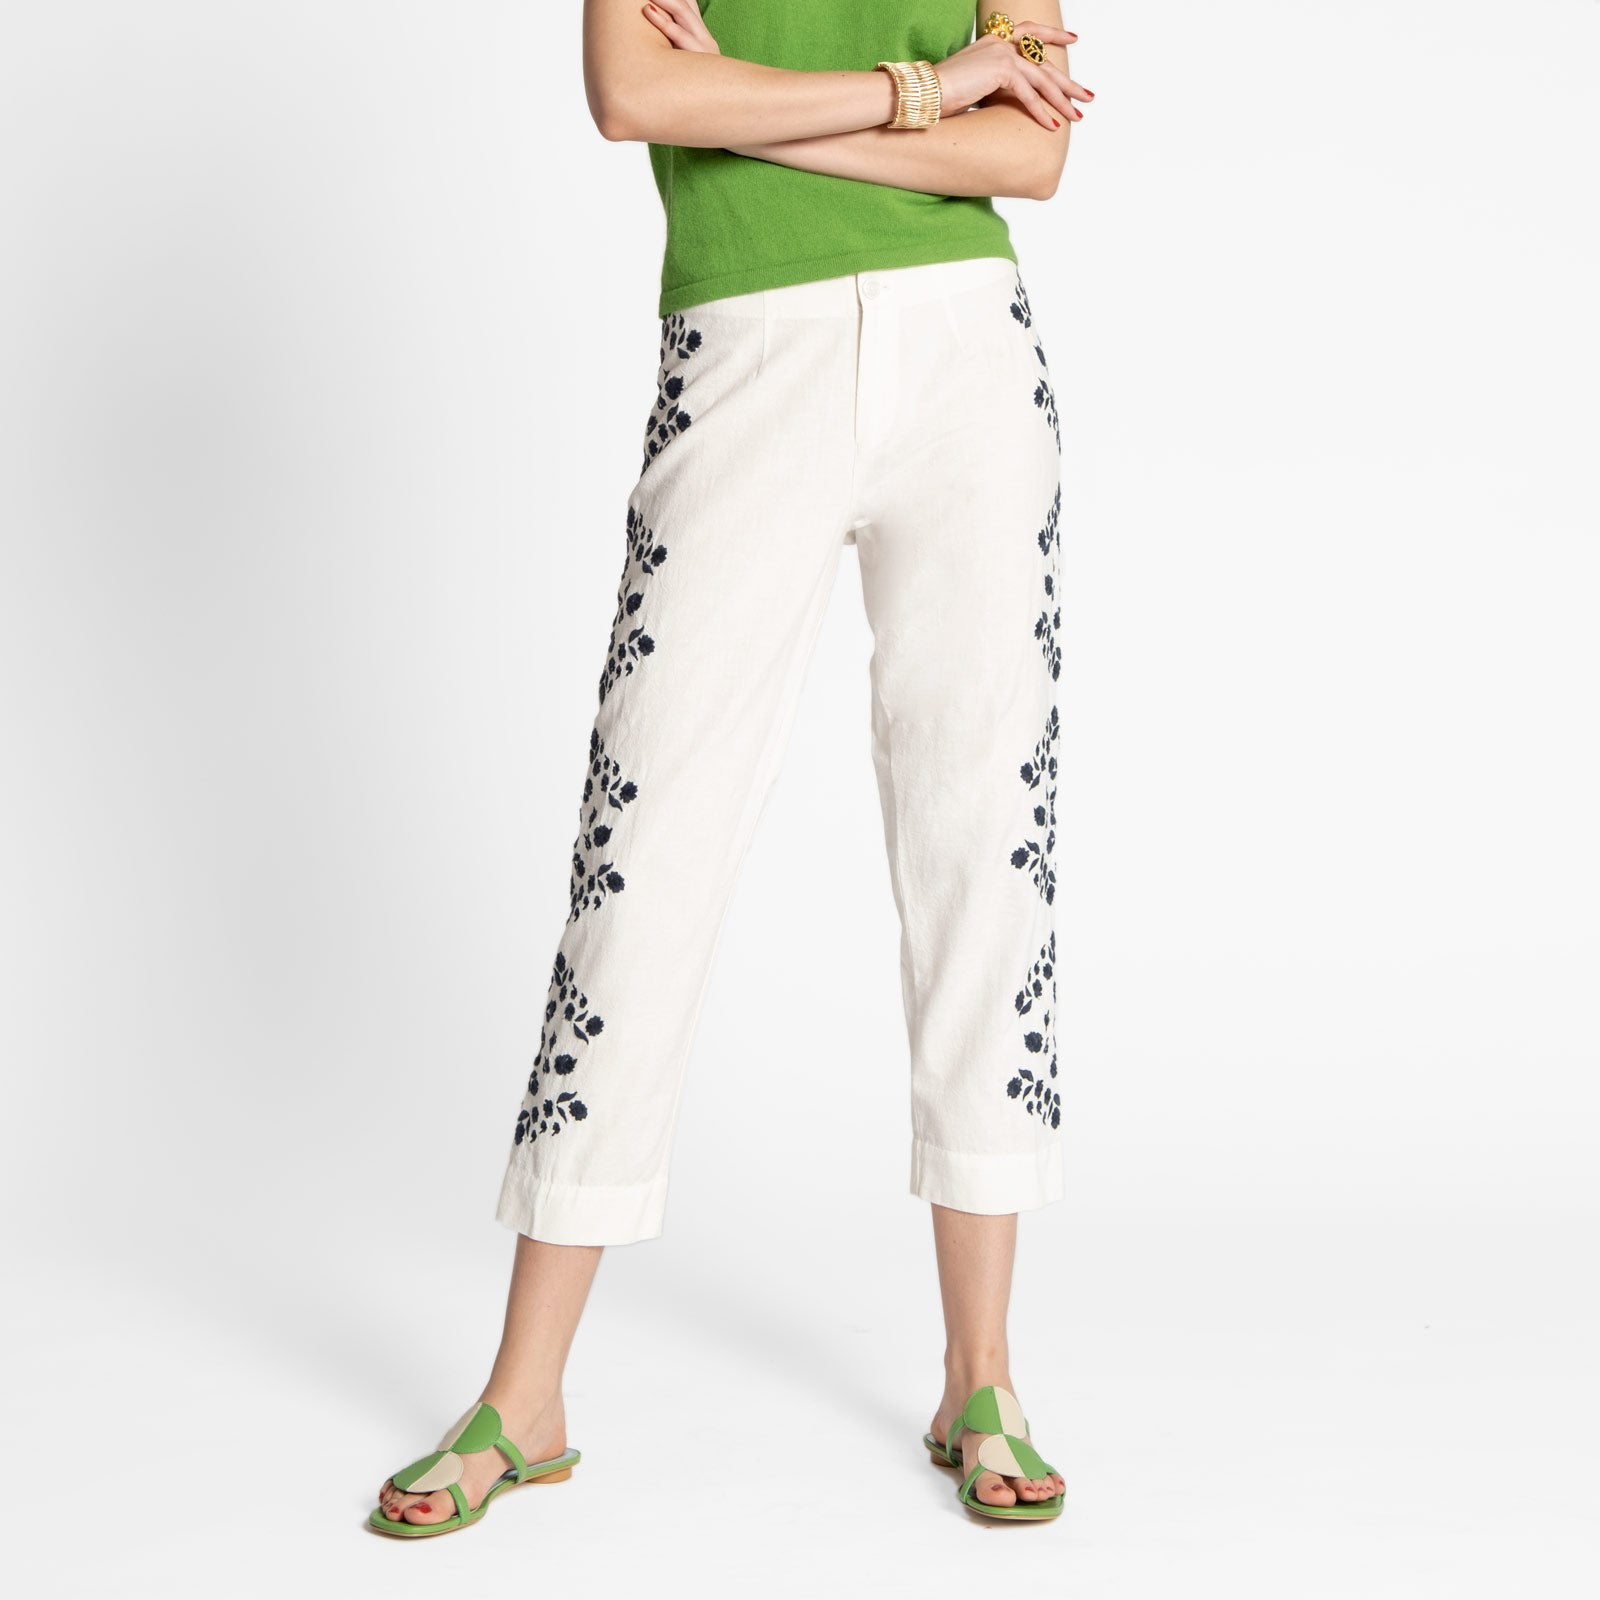 Floral Embroidered Pant Oyster Navy - Frances Valentine